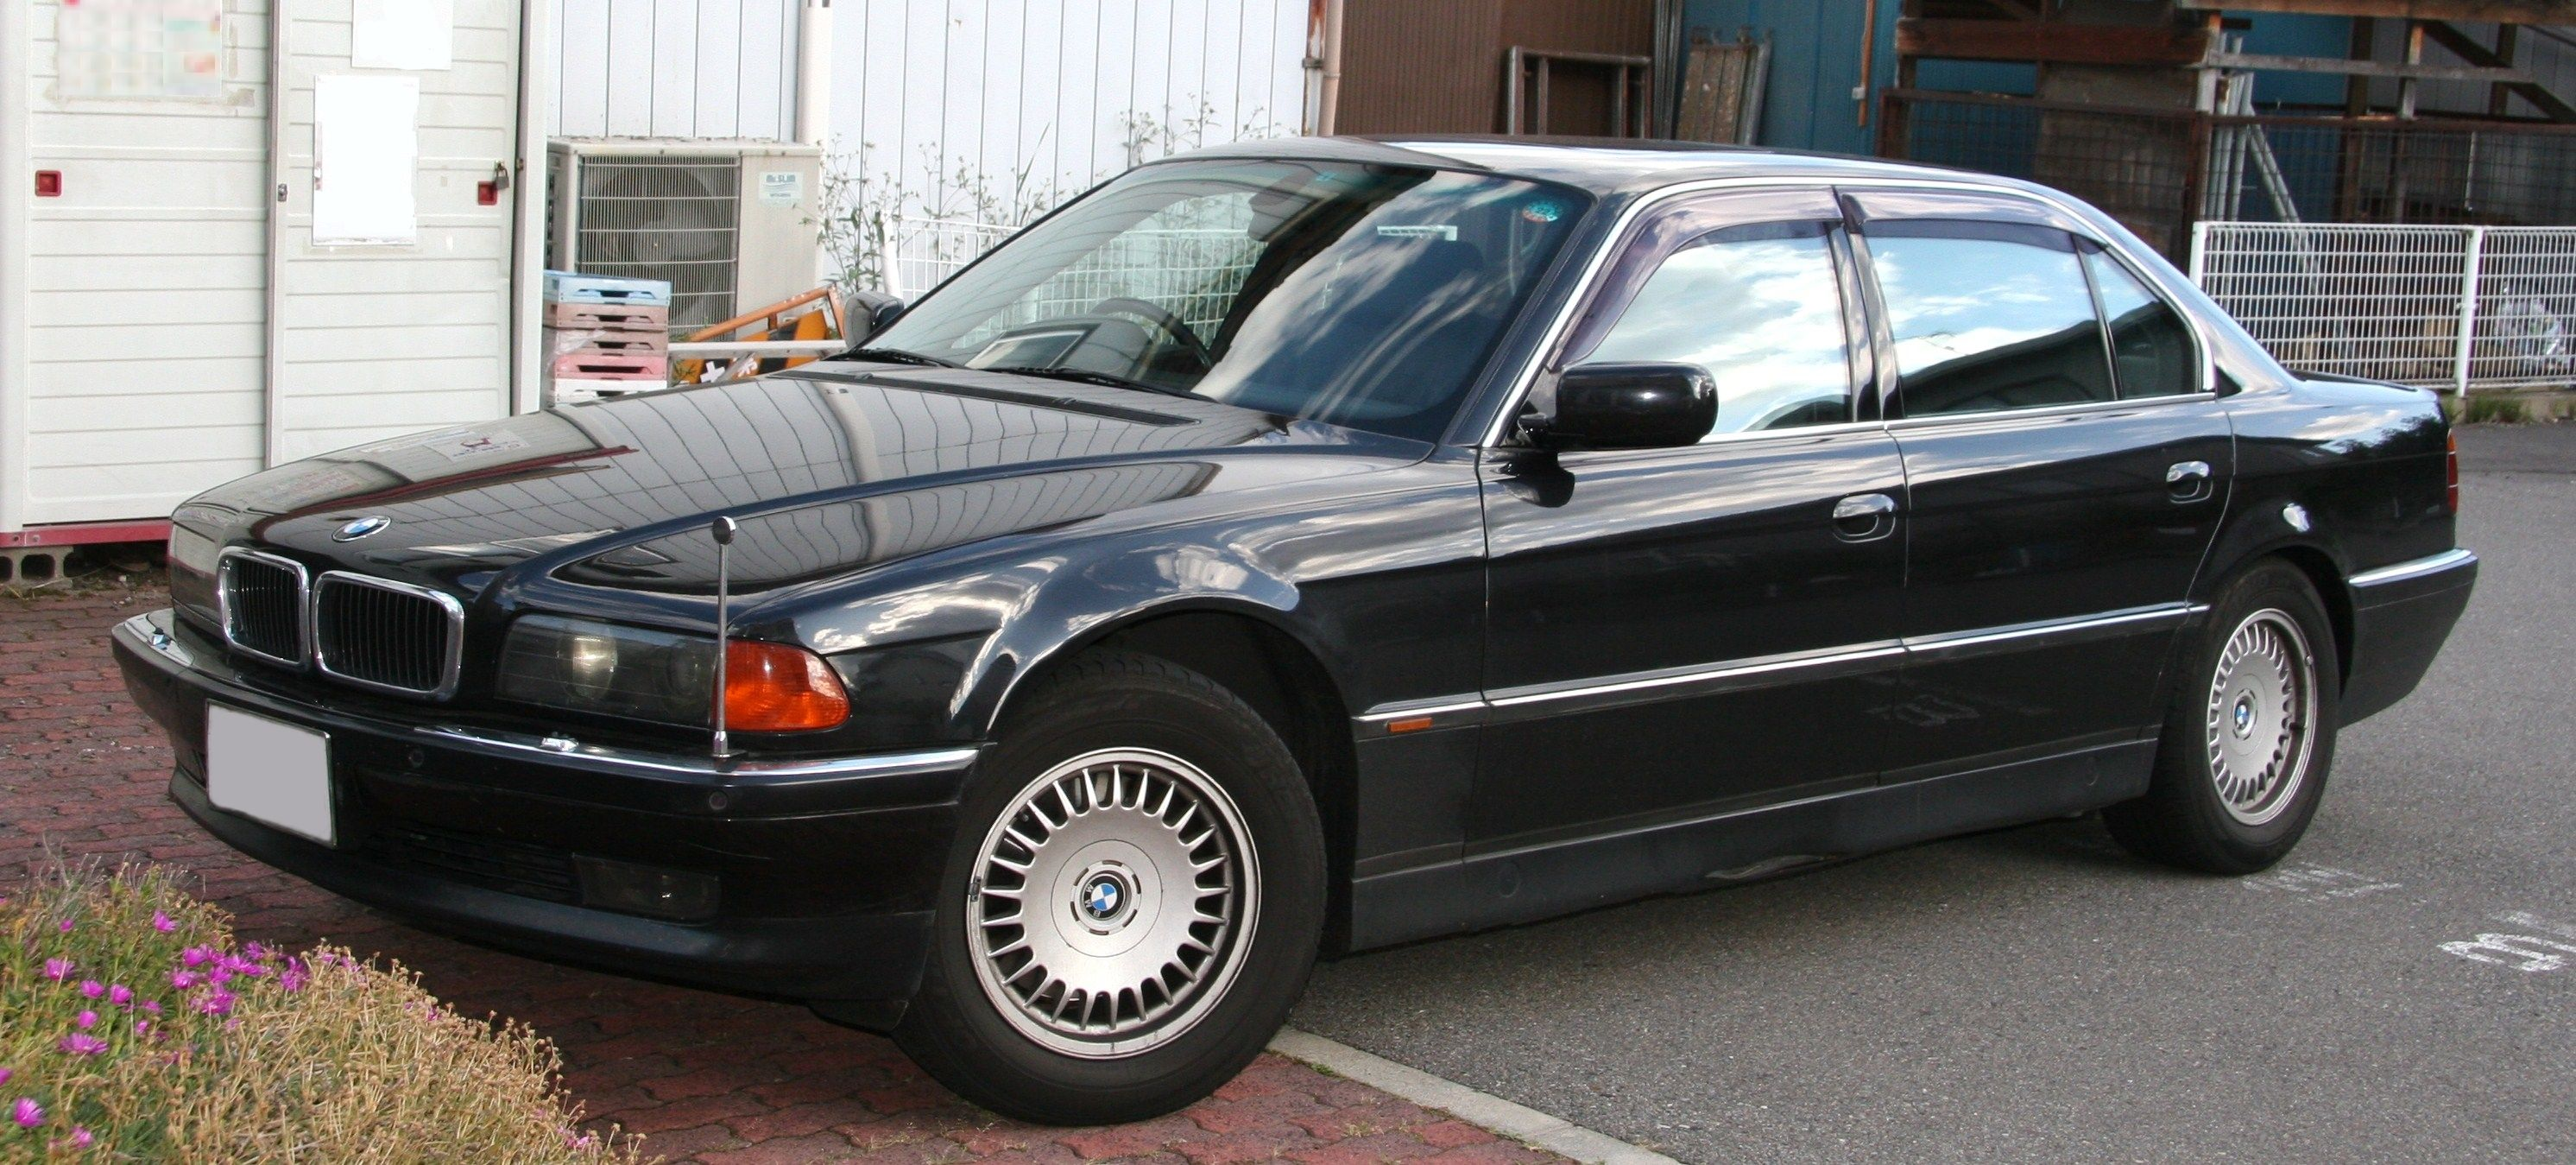 File:BMW 750iL.jpg - Wikimedia Commons